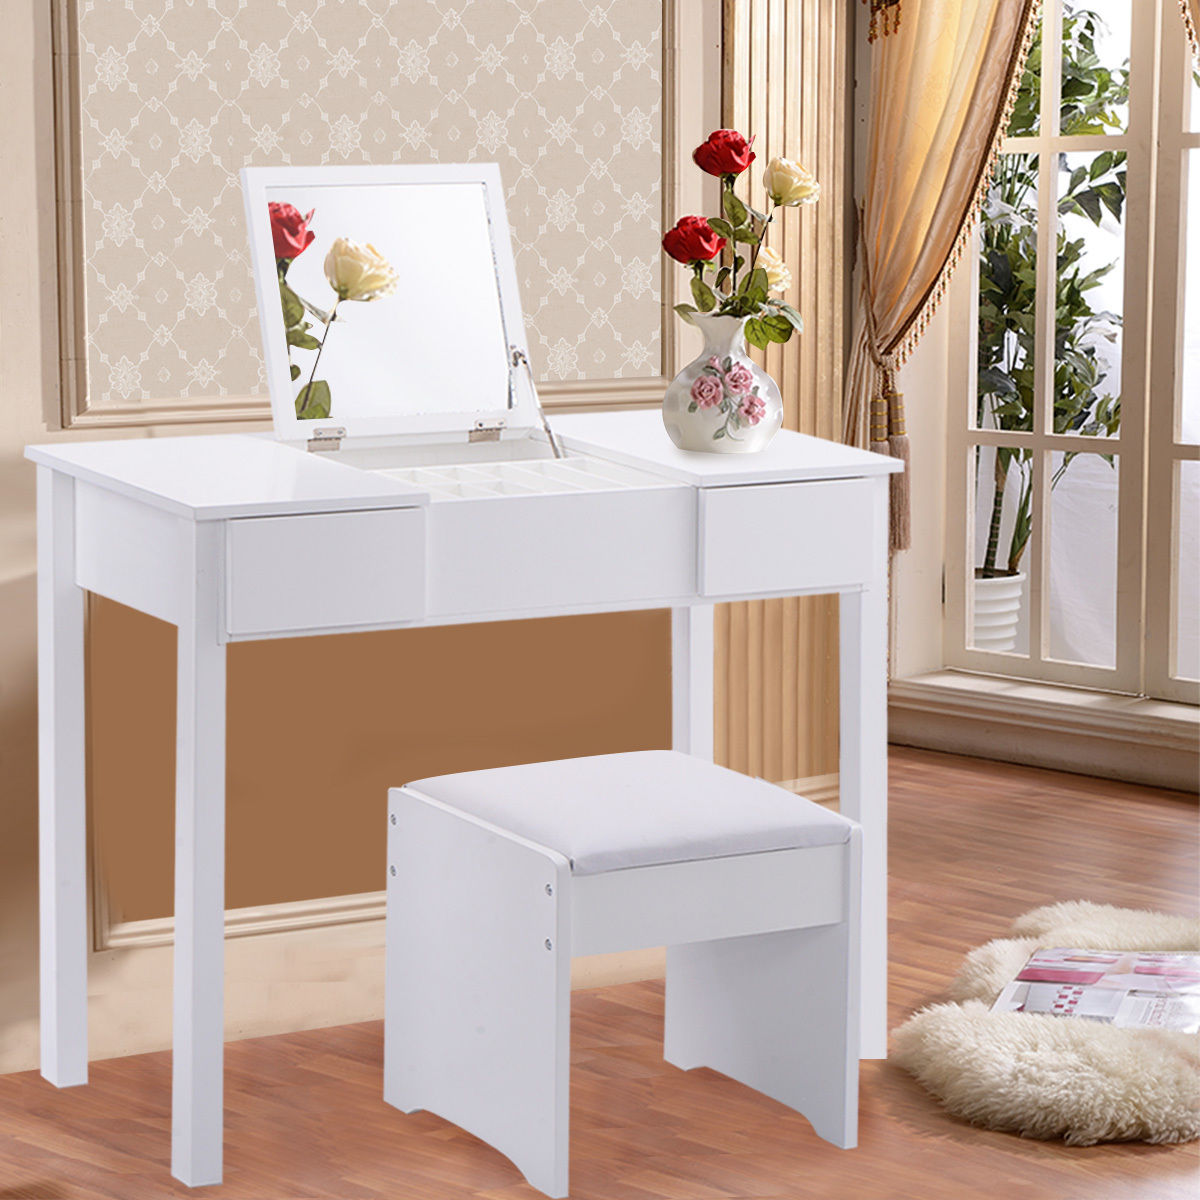 Costway White Vanity Dressing Table Set Mirrored Bedroom Furniture W Stool &Storage Box by Costway